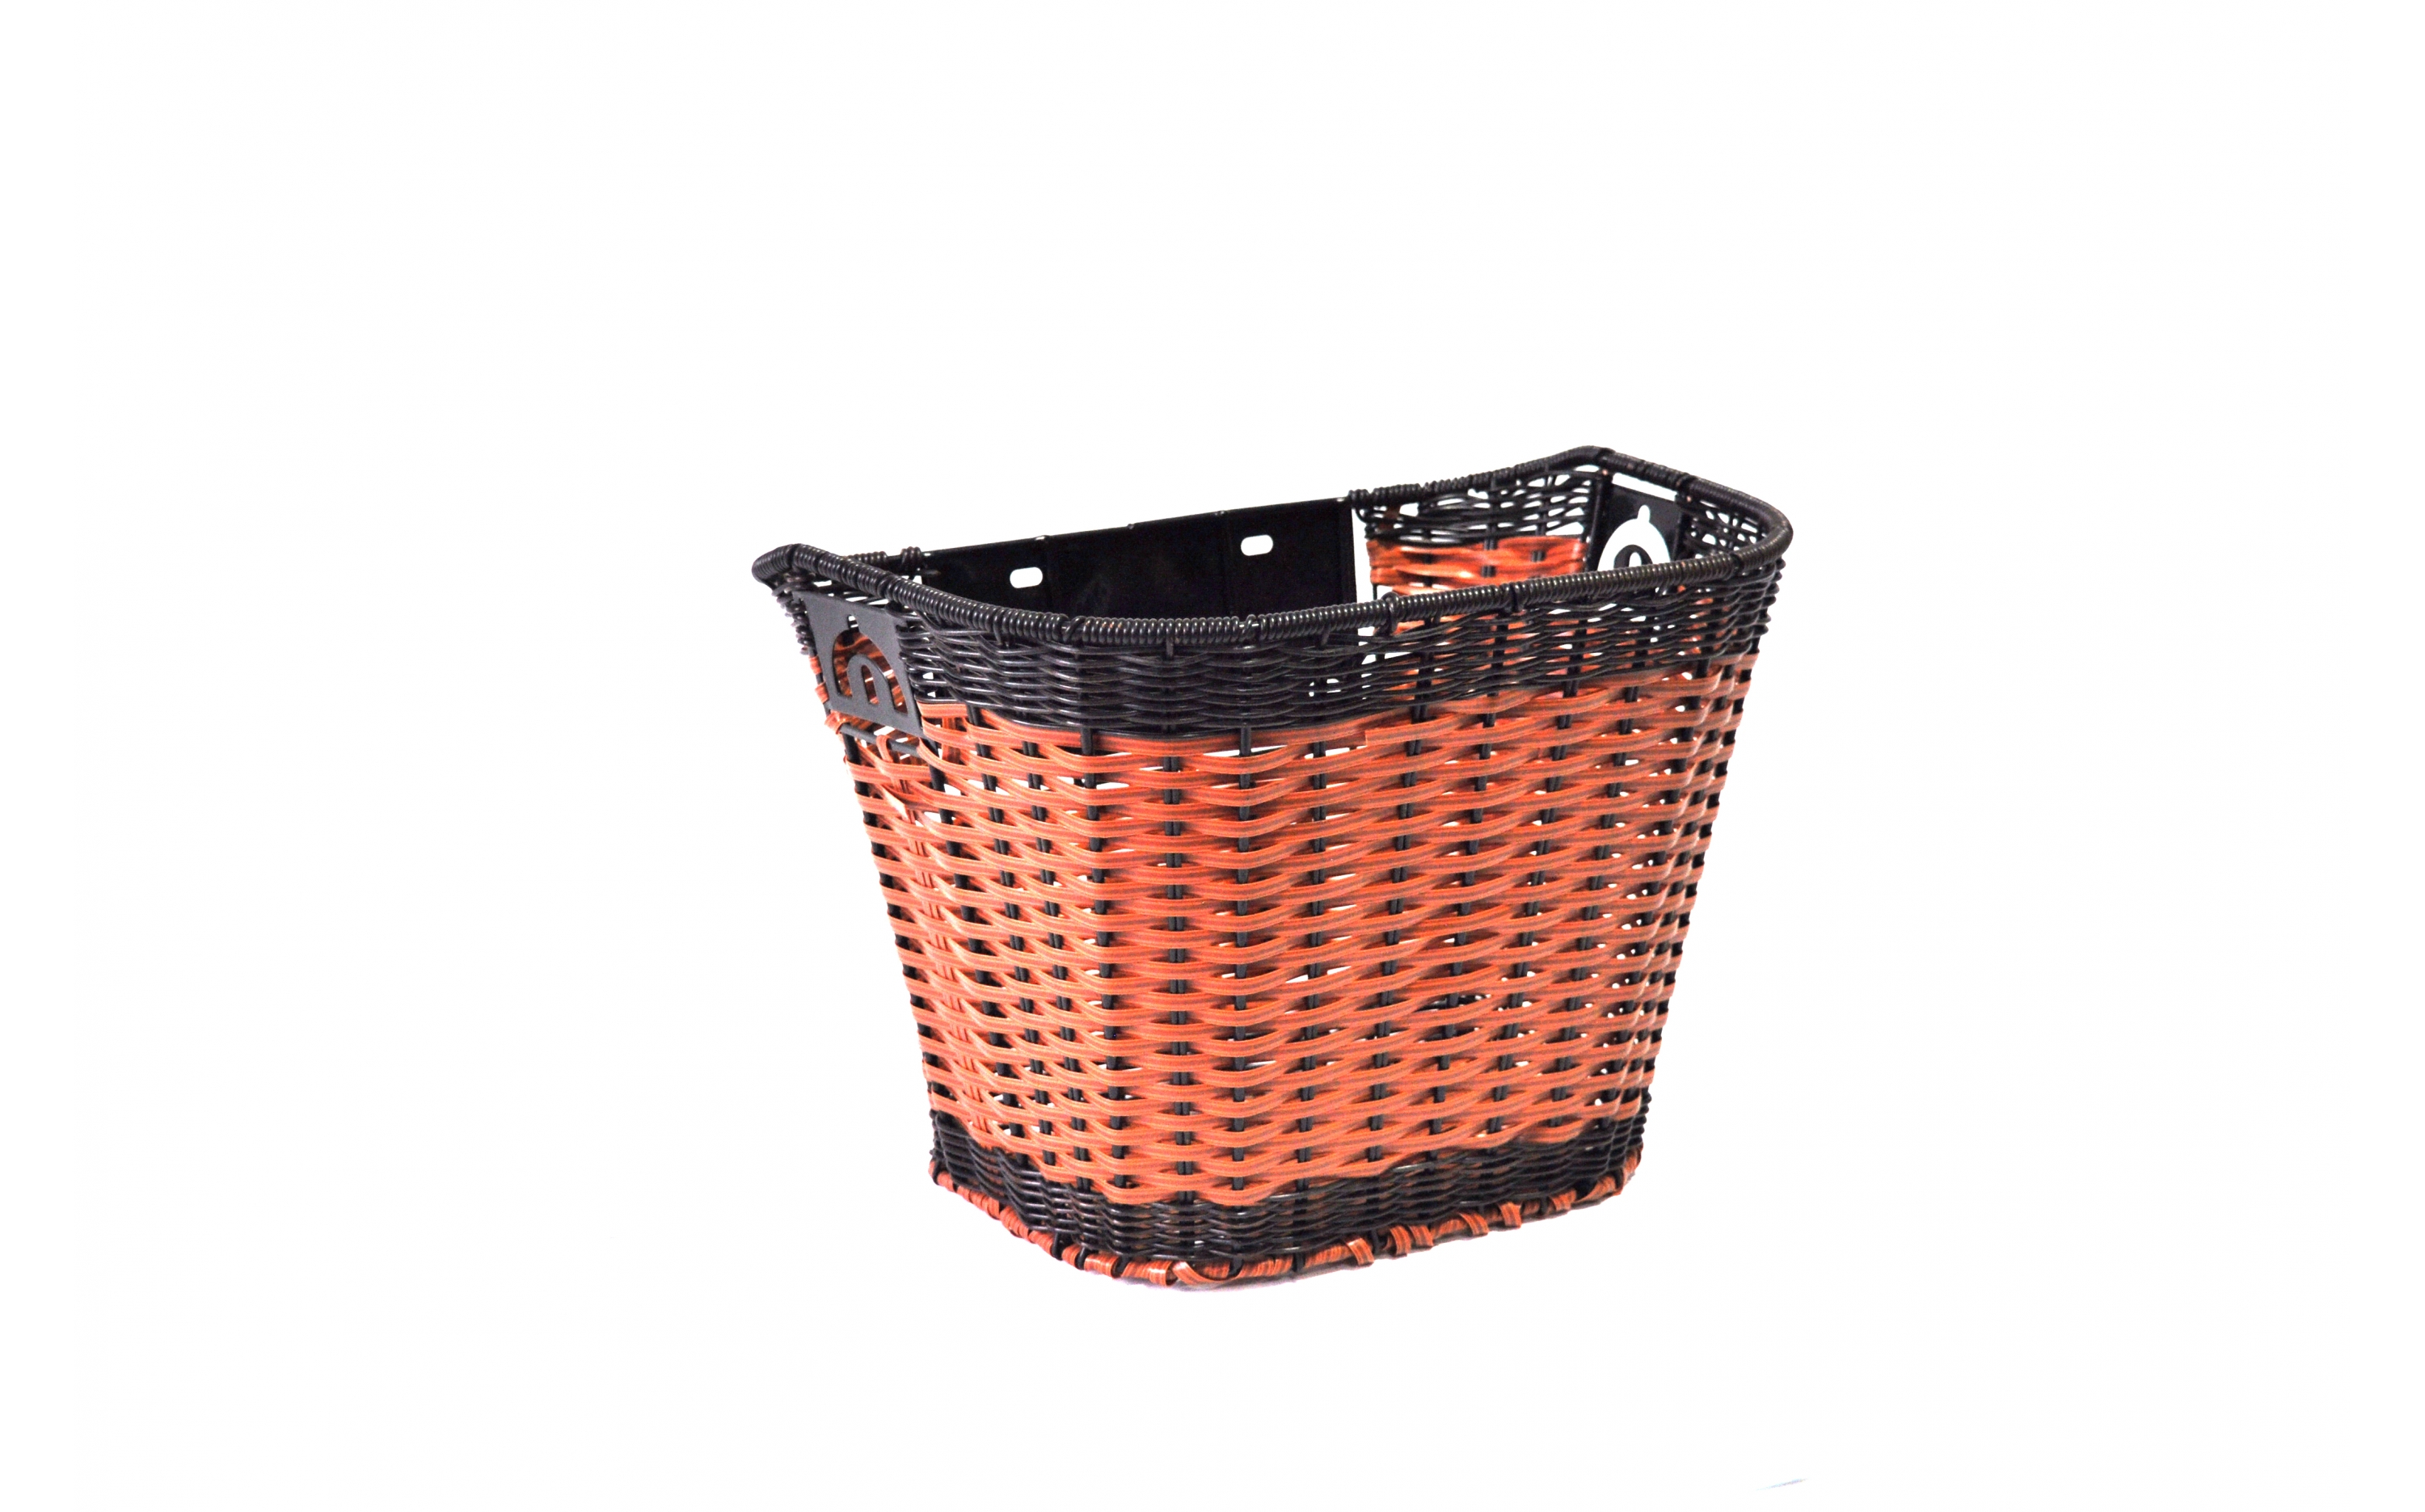 Basket Ardis JL-CK101 on a stick of plastic braided with a bracket brown